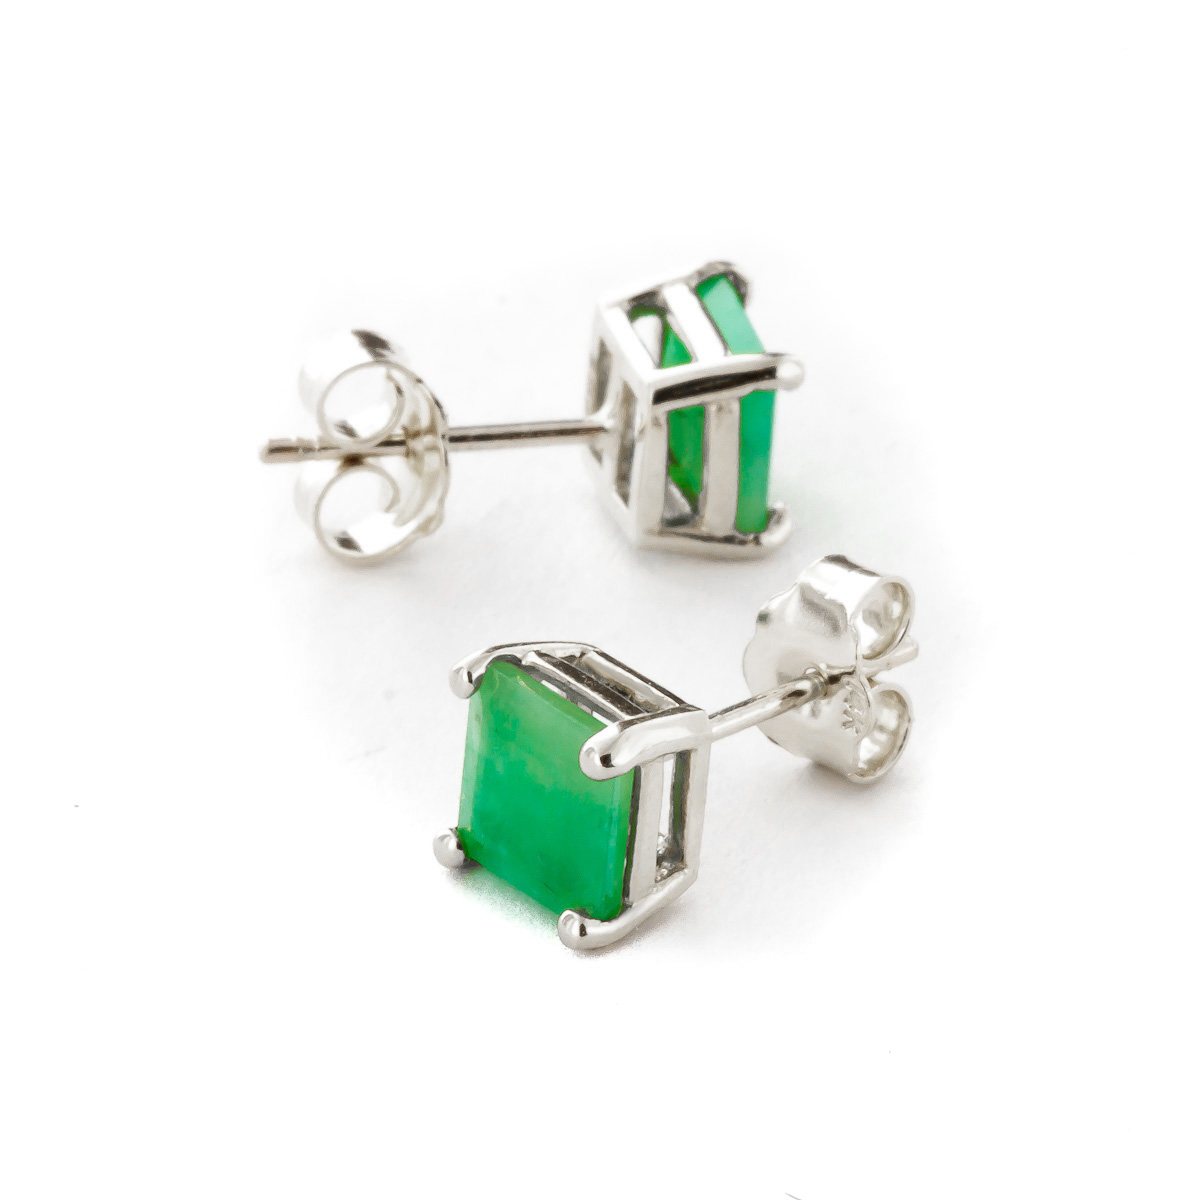 9ct White Gold Emerald Heart stud earrings L6tAG